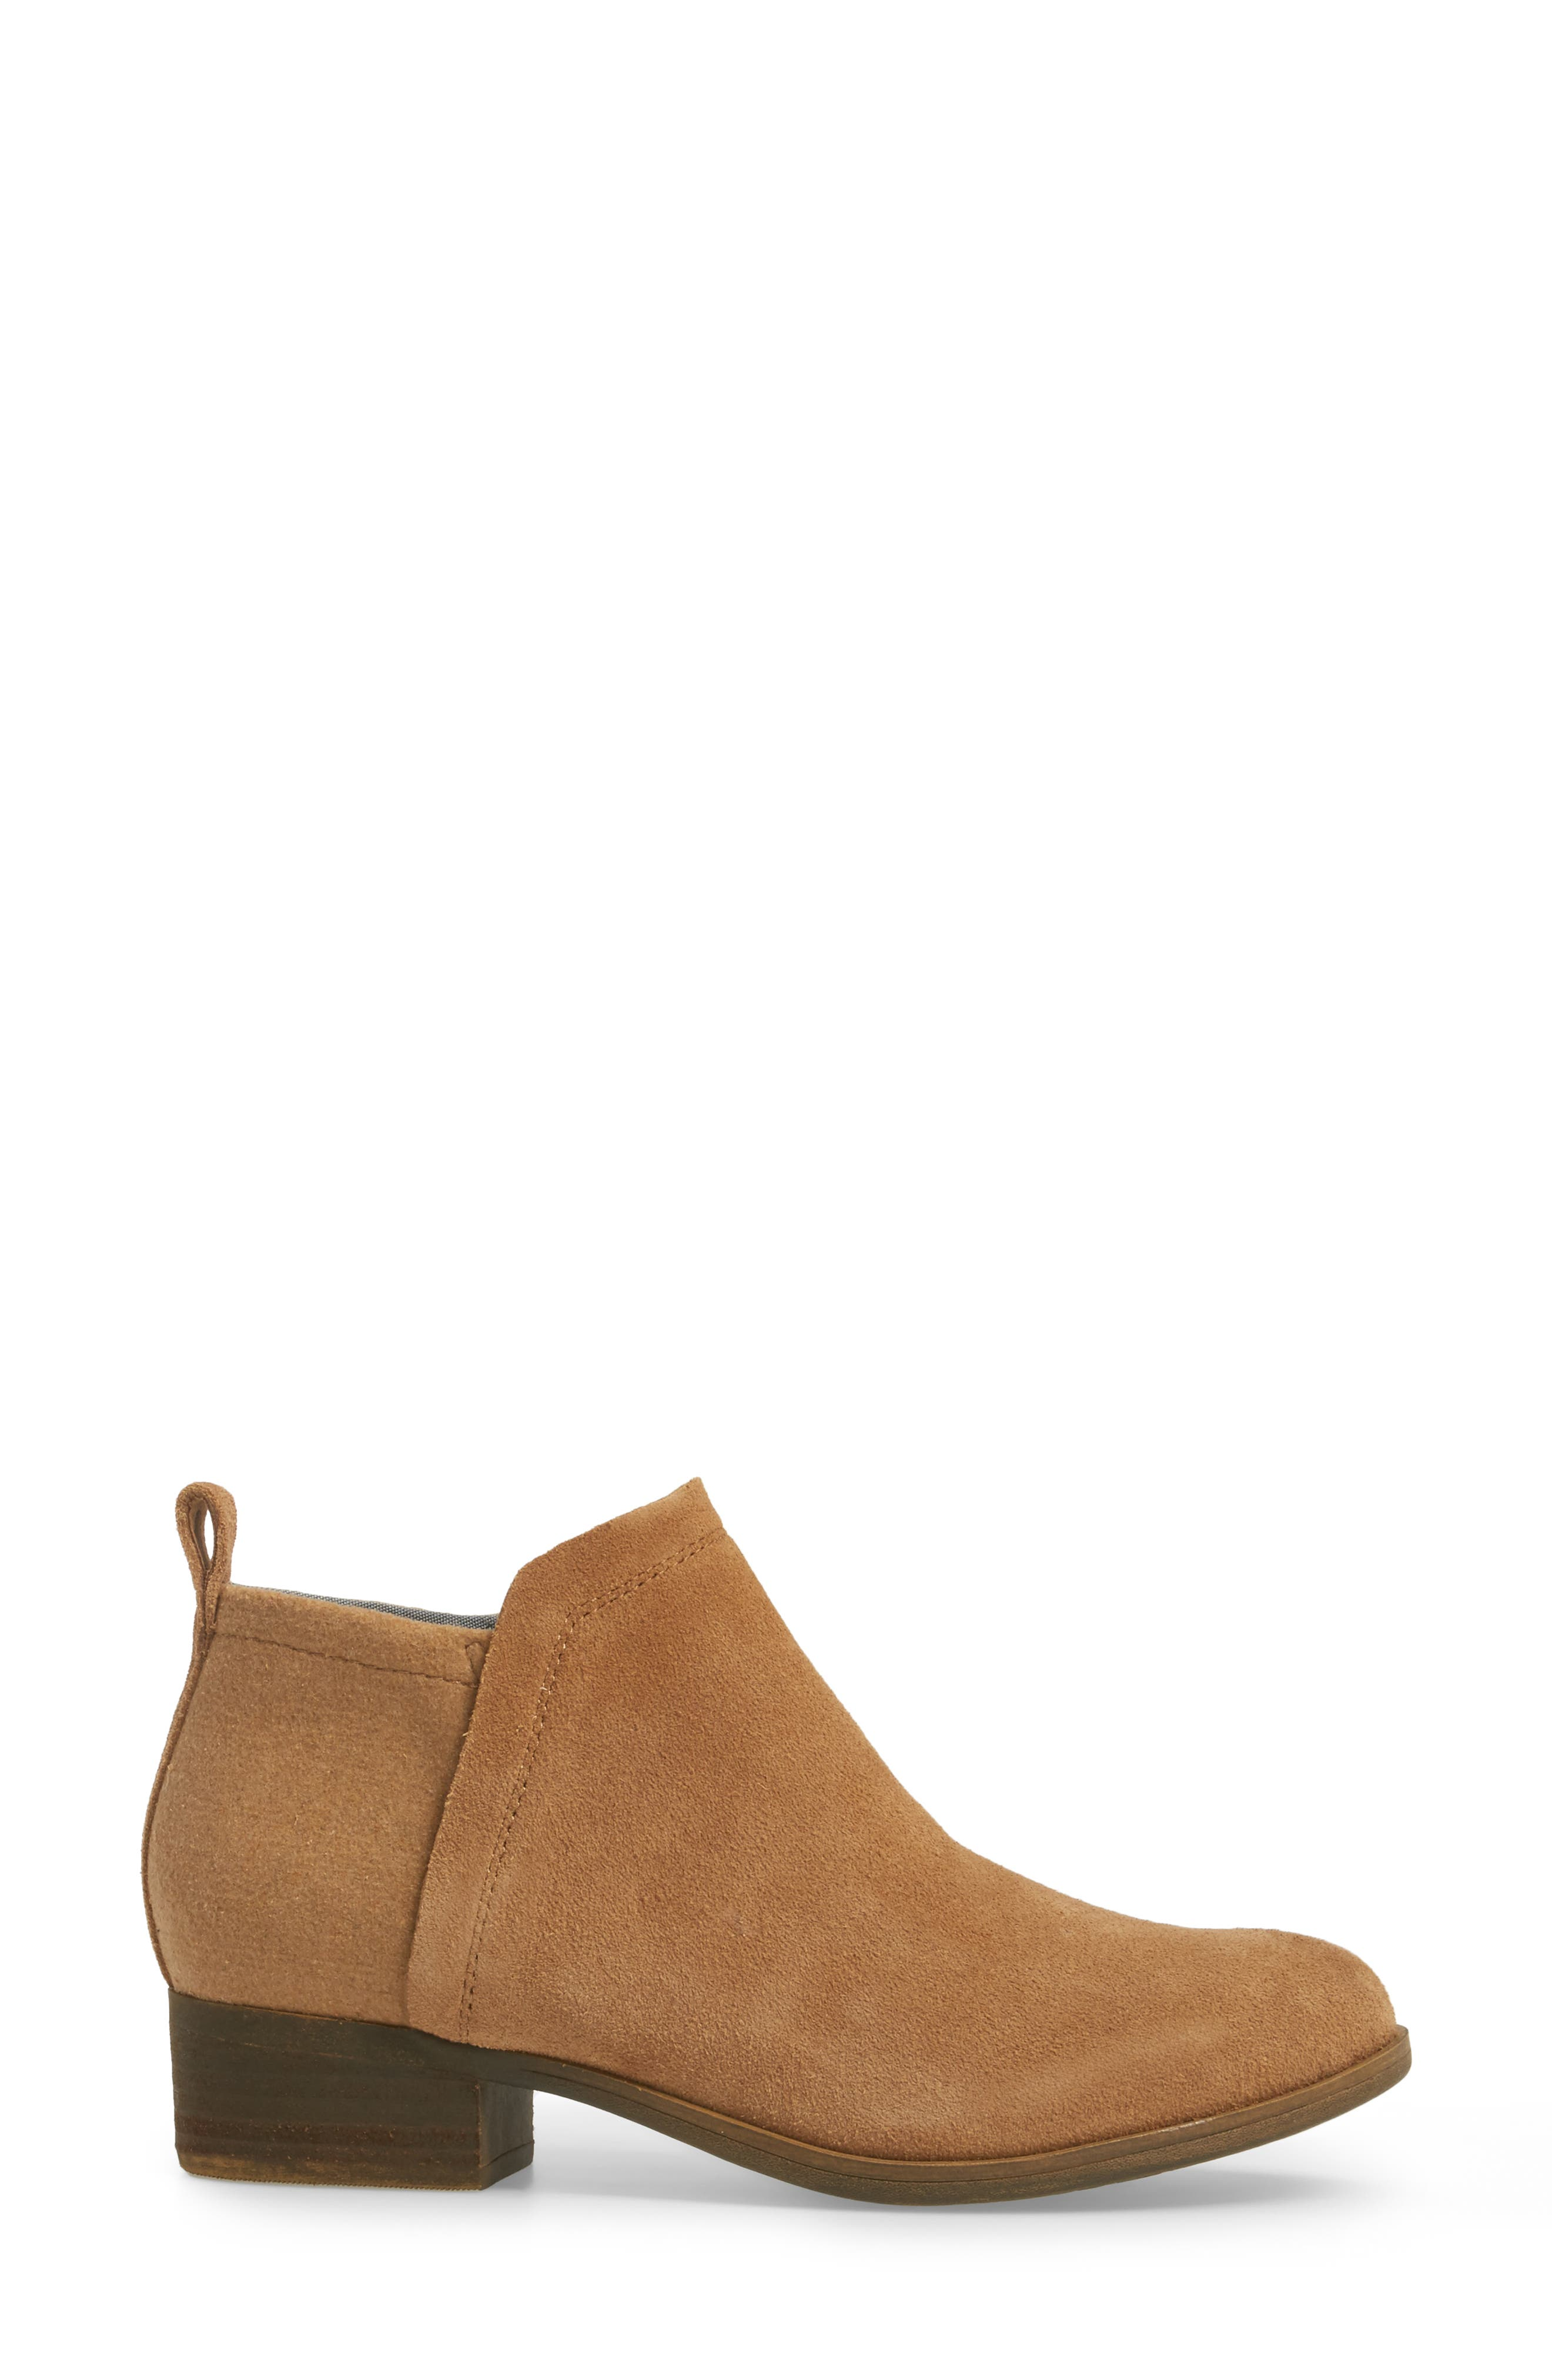 Deia Zip Bootie,                             Alternate thumbnail 28, color,